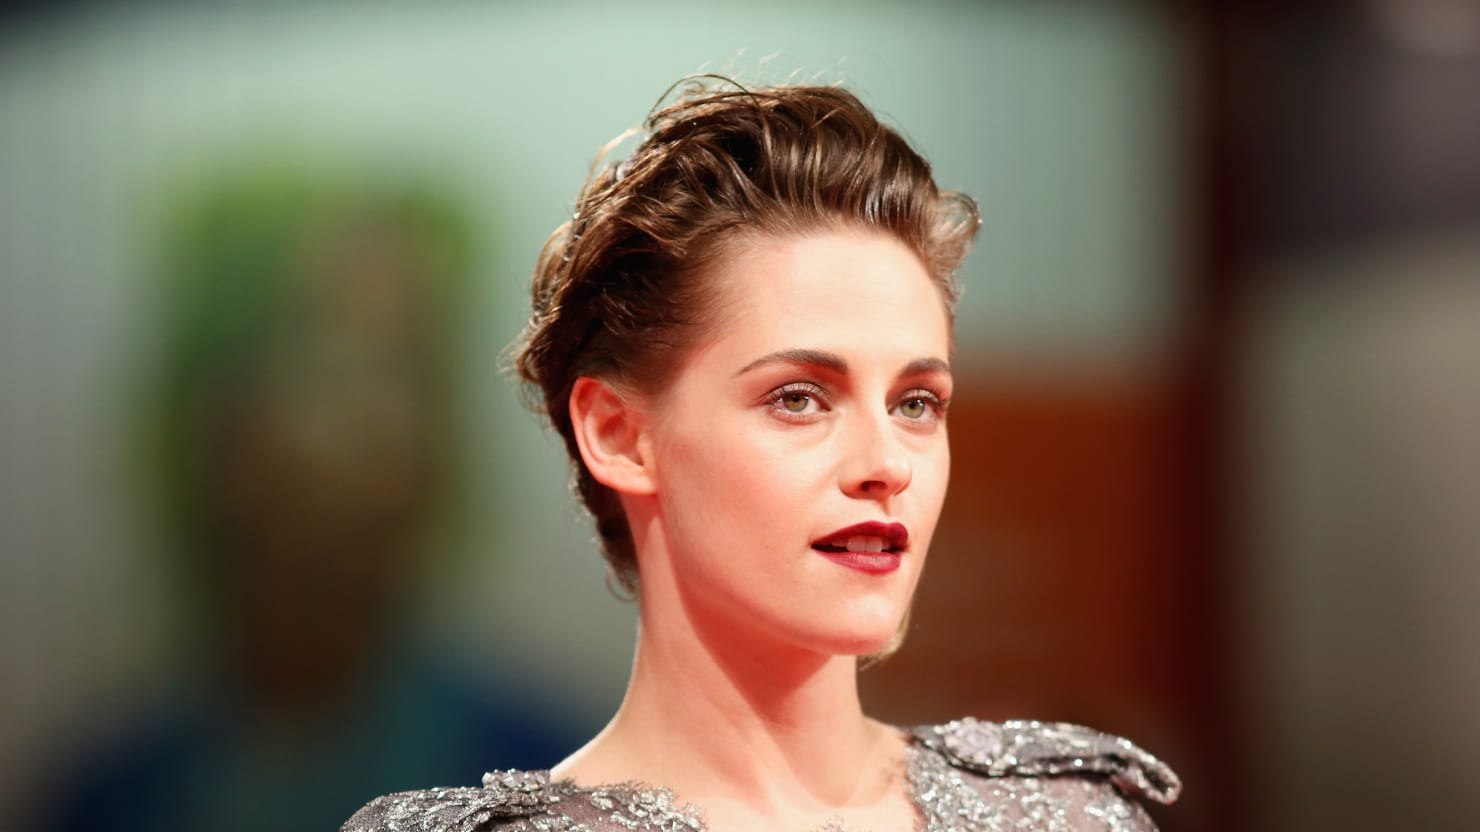 kristen stewart on lgbt rights, generation rx, and overcoming heartbreak